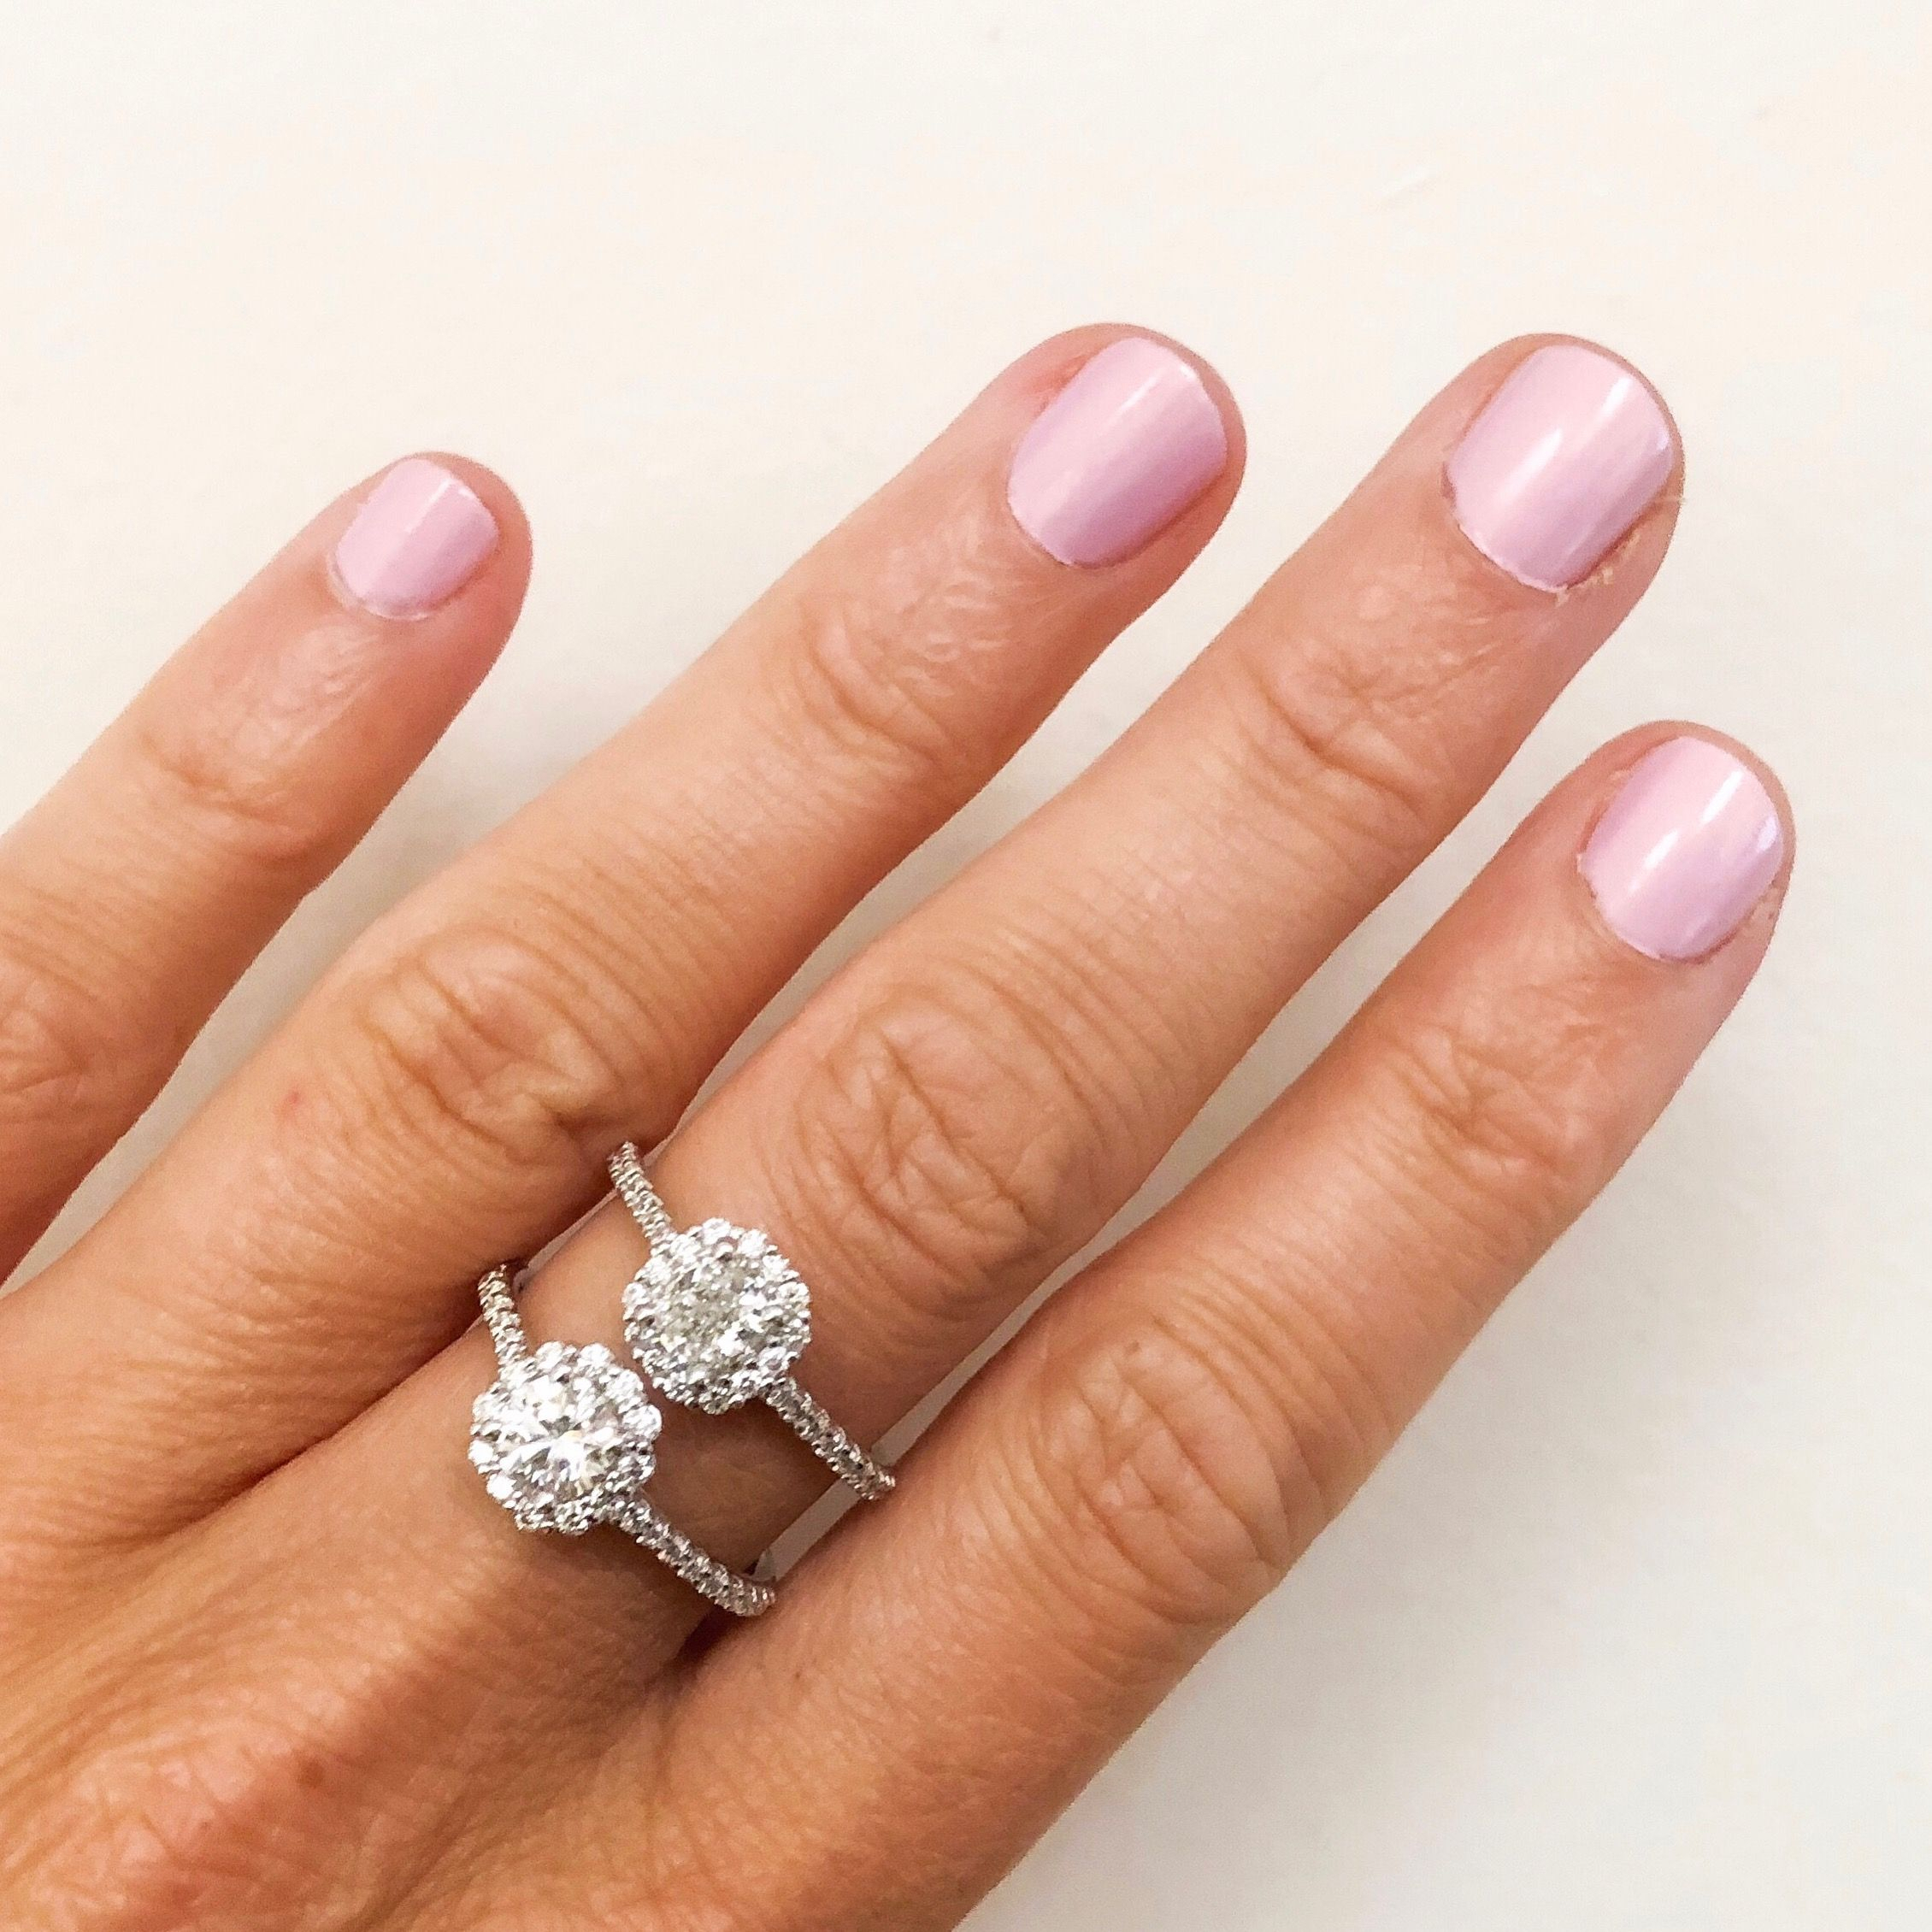 In Love With These Sparkling Halo Engagement Rings! View The Entire Regarding Best And Newest Sparkling Halo Rings (View 4 of 25)